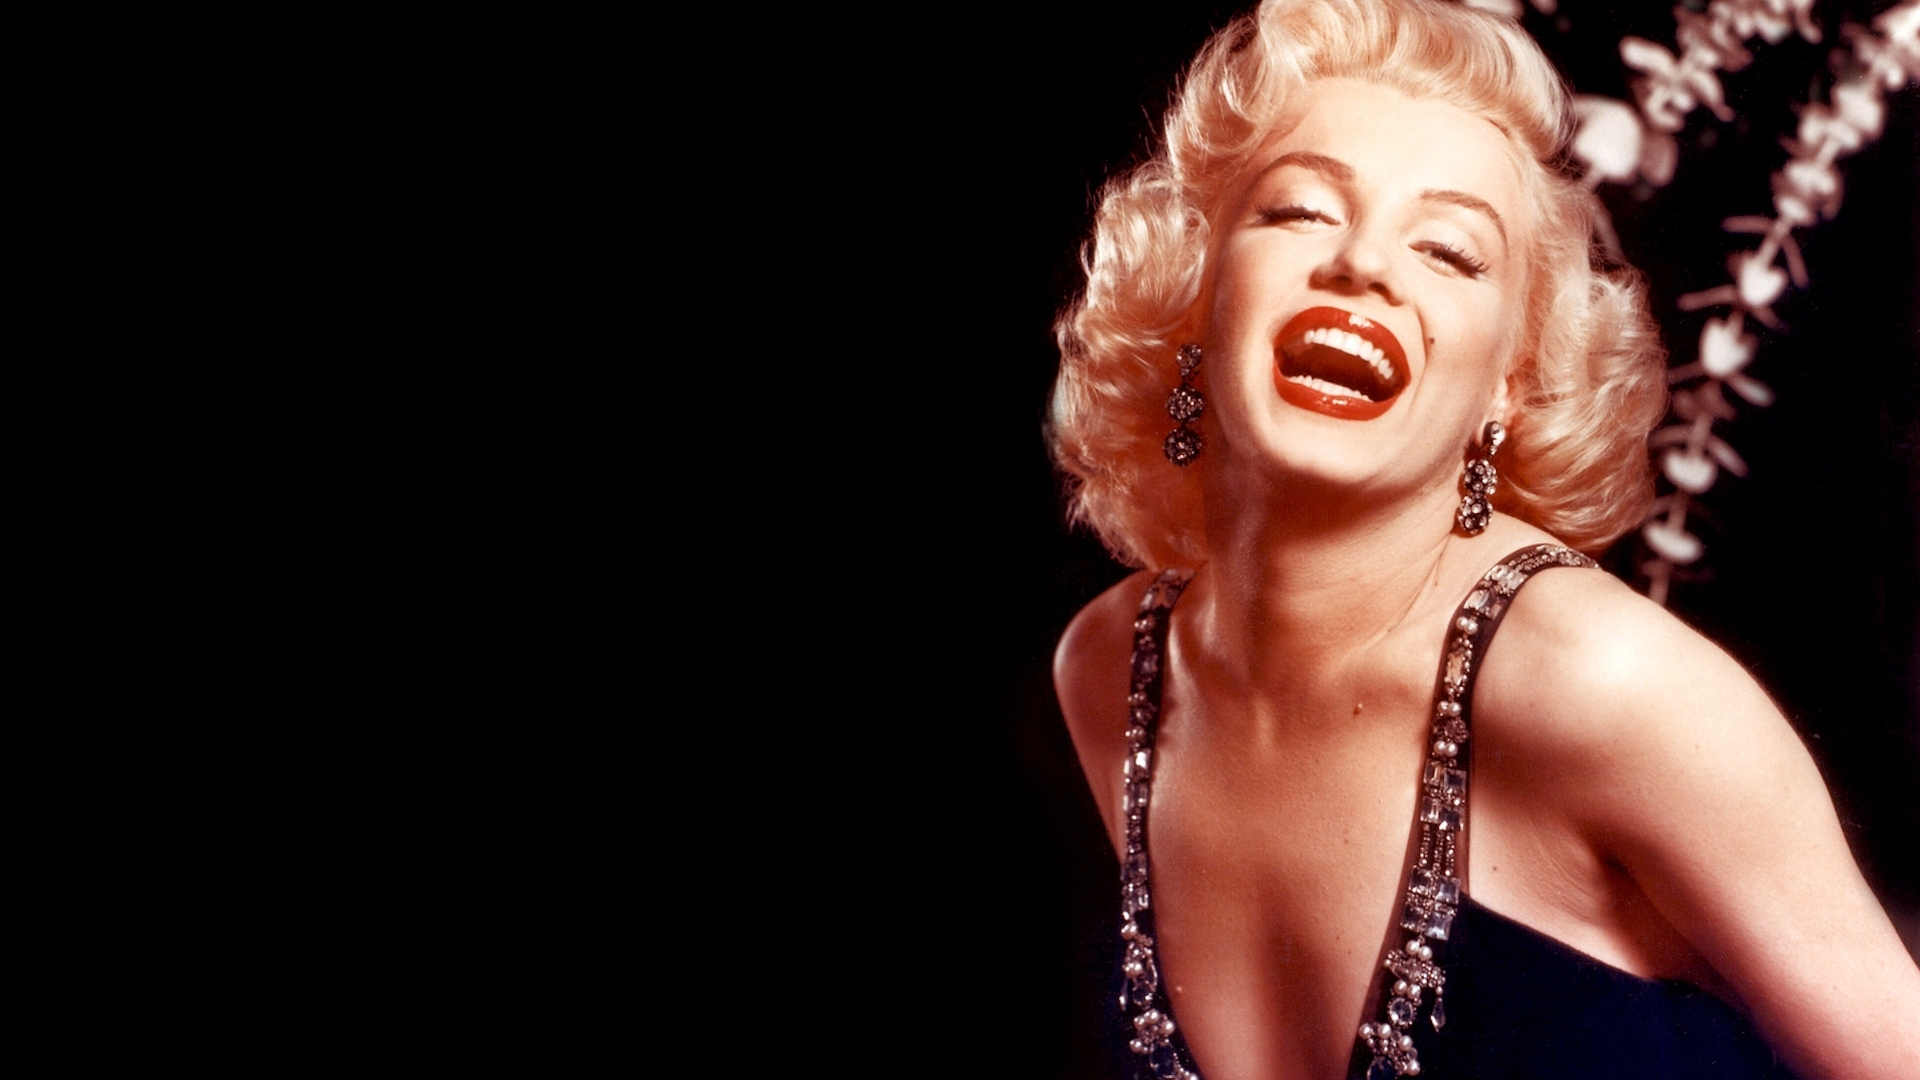 the 50's images marilyn monroe hd wallpaper and background photos